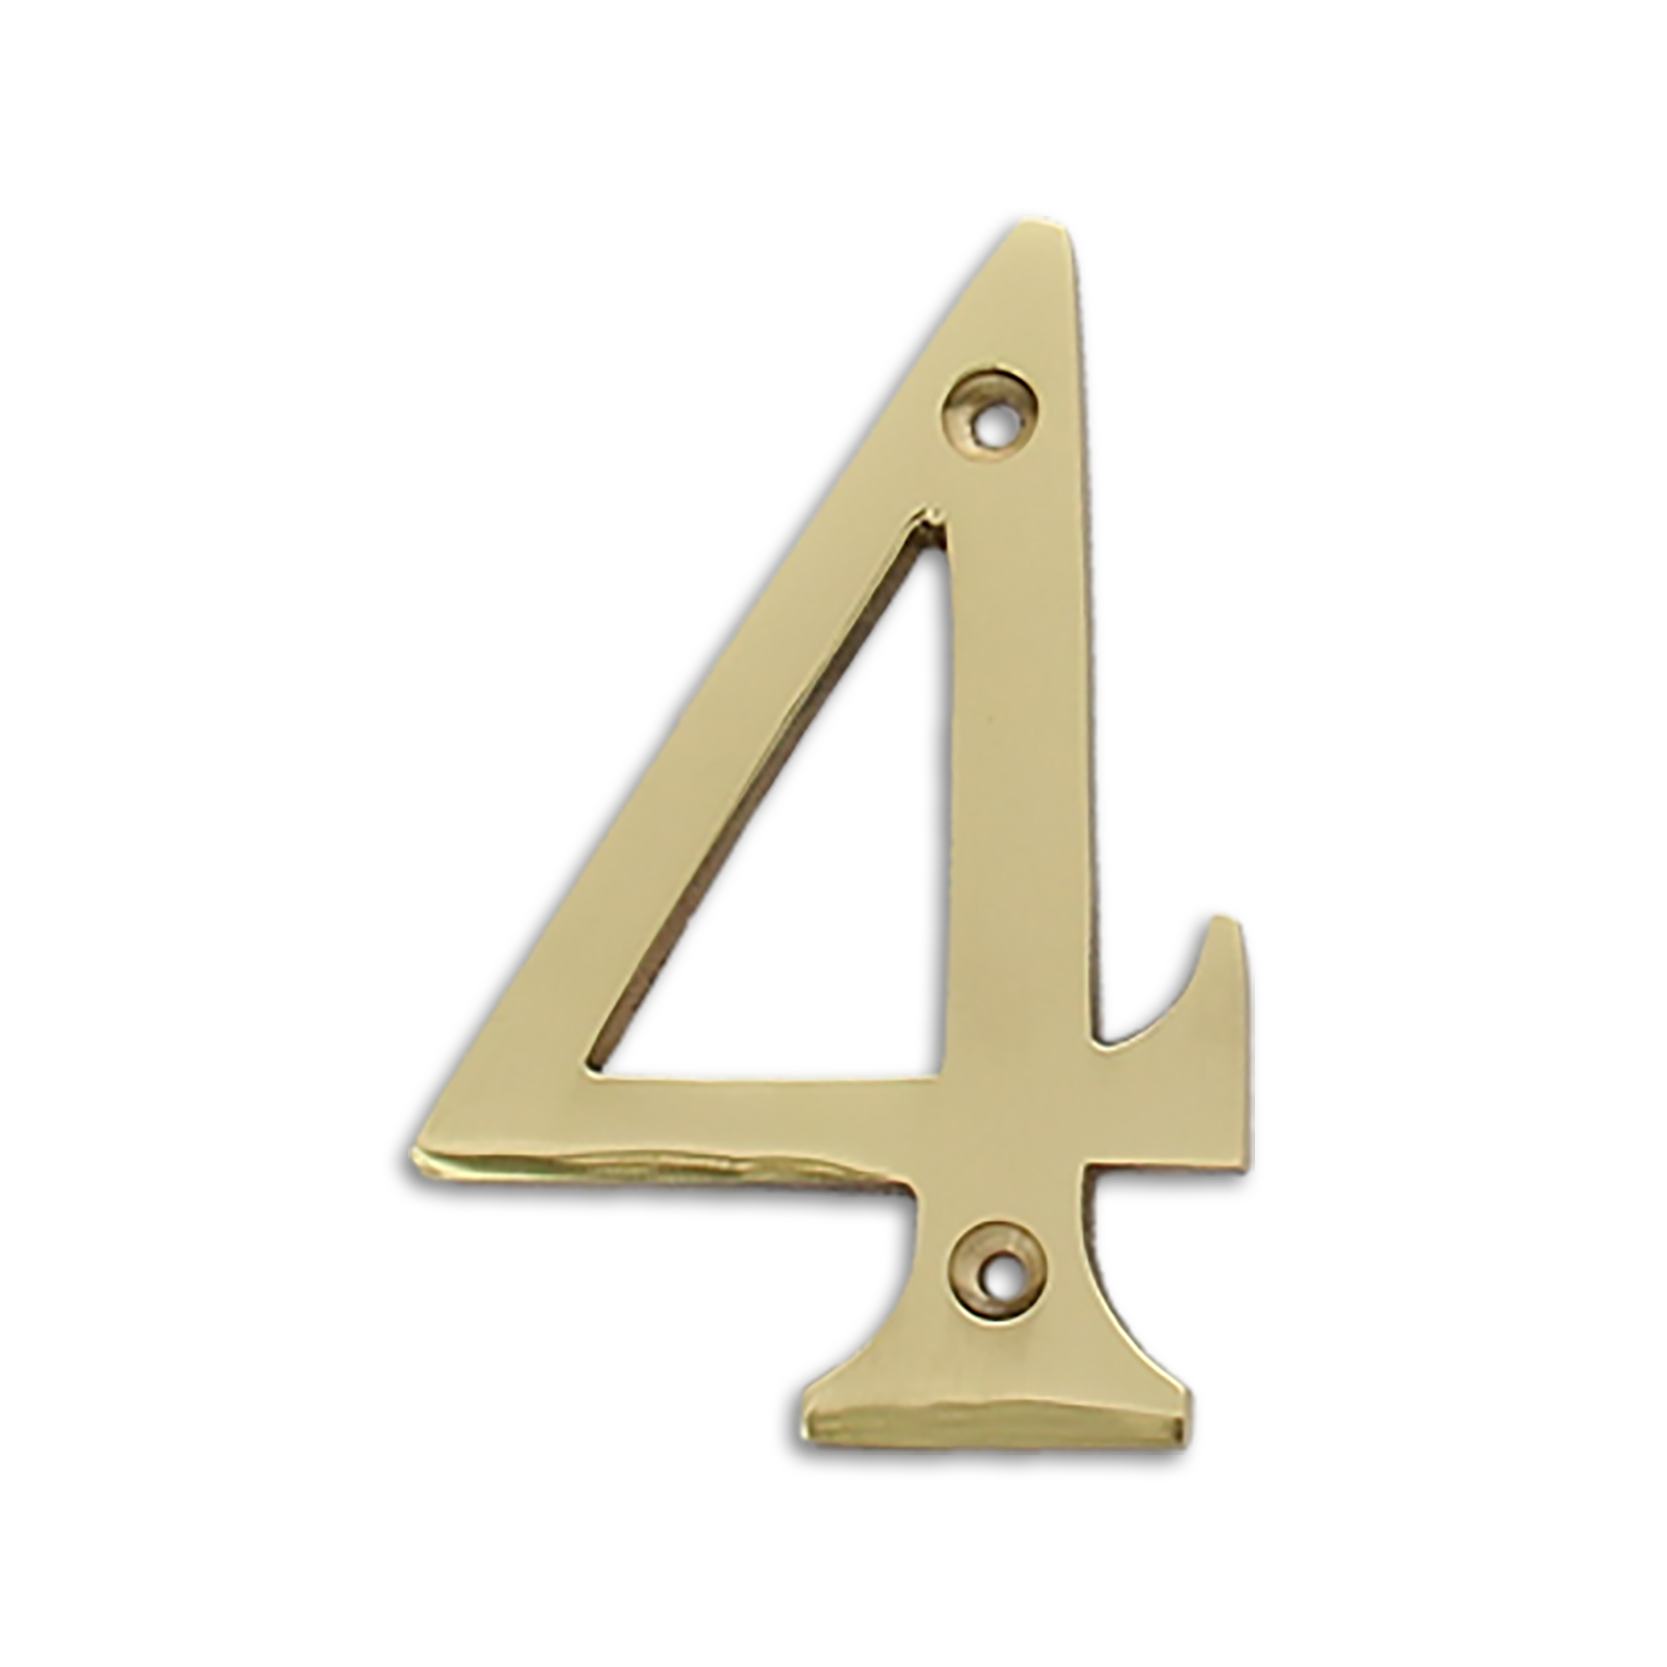 4-inch brass metal house number in polished brass finish - metal number 4